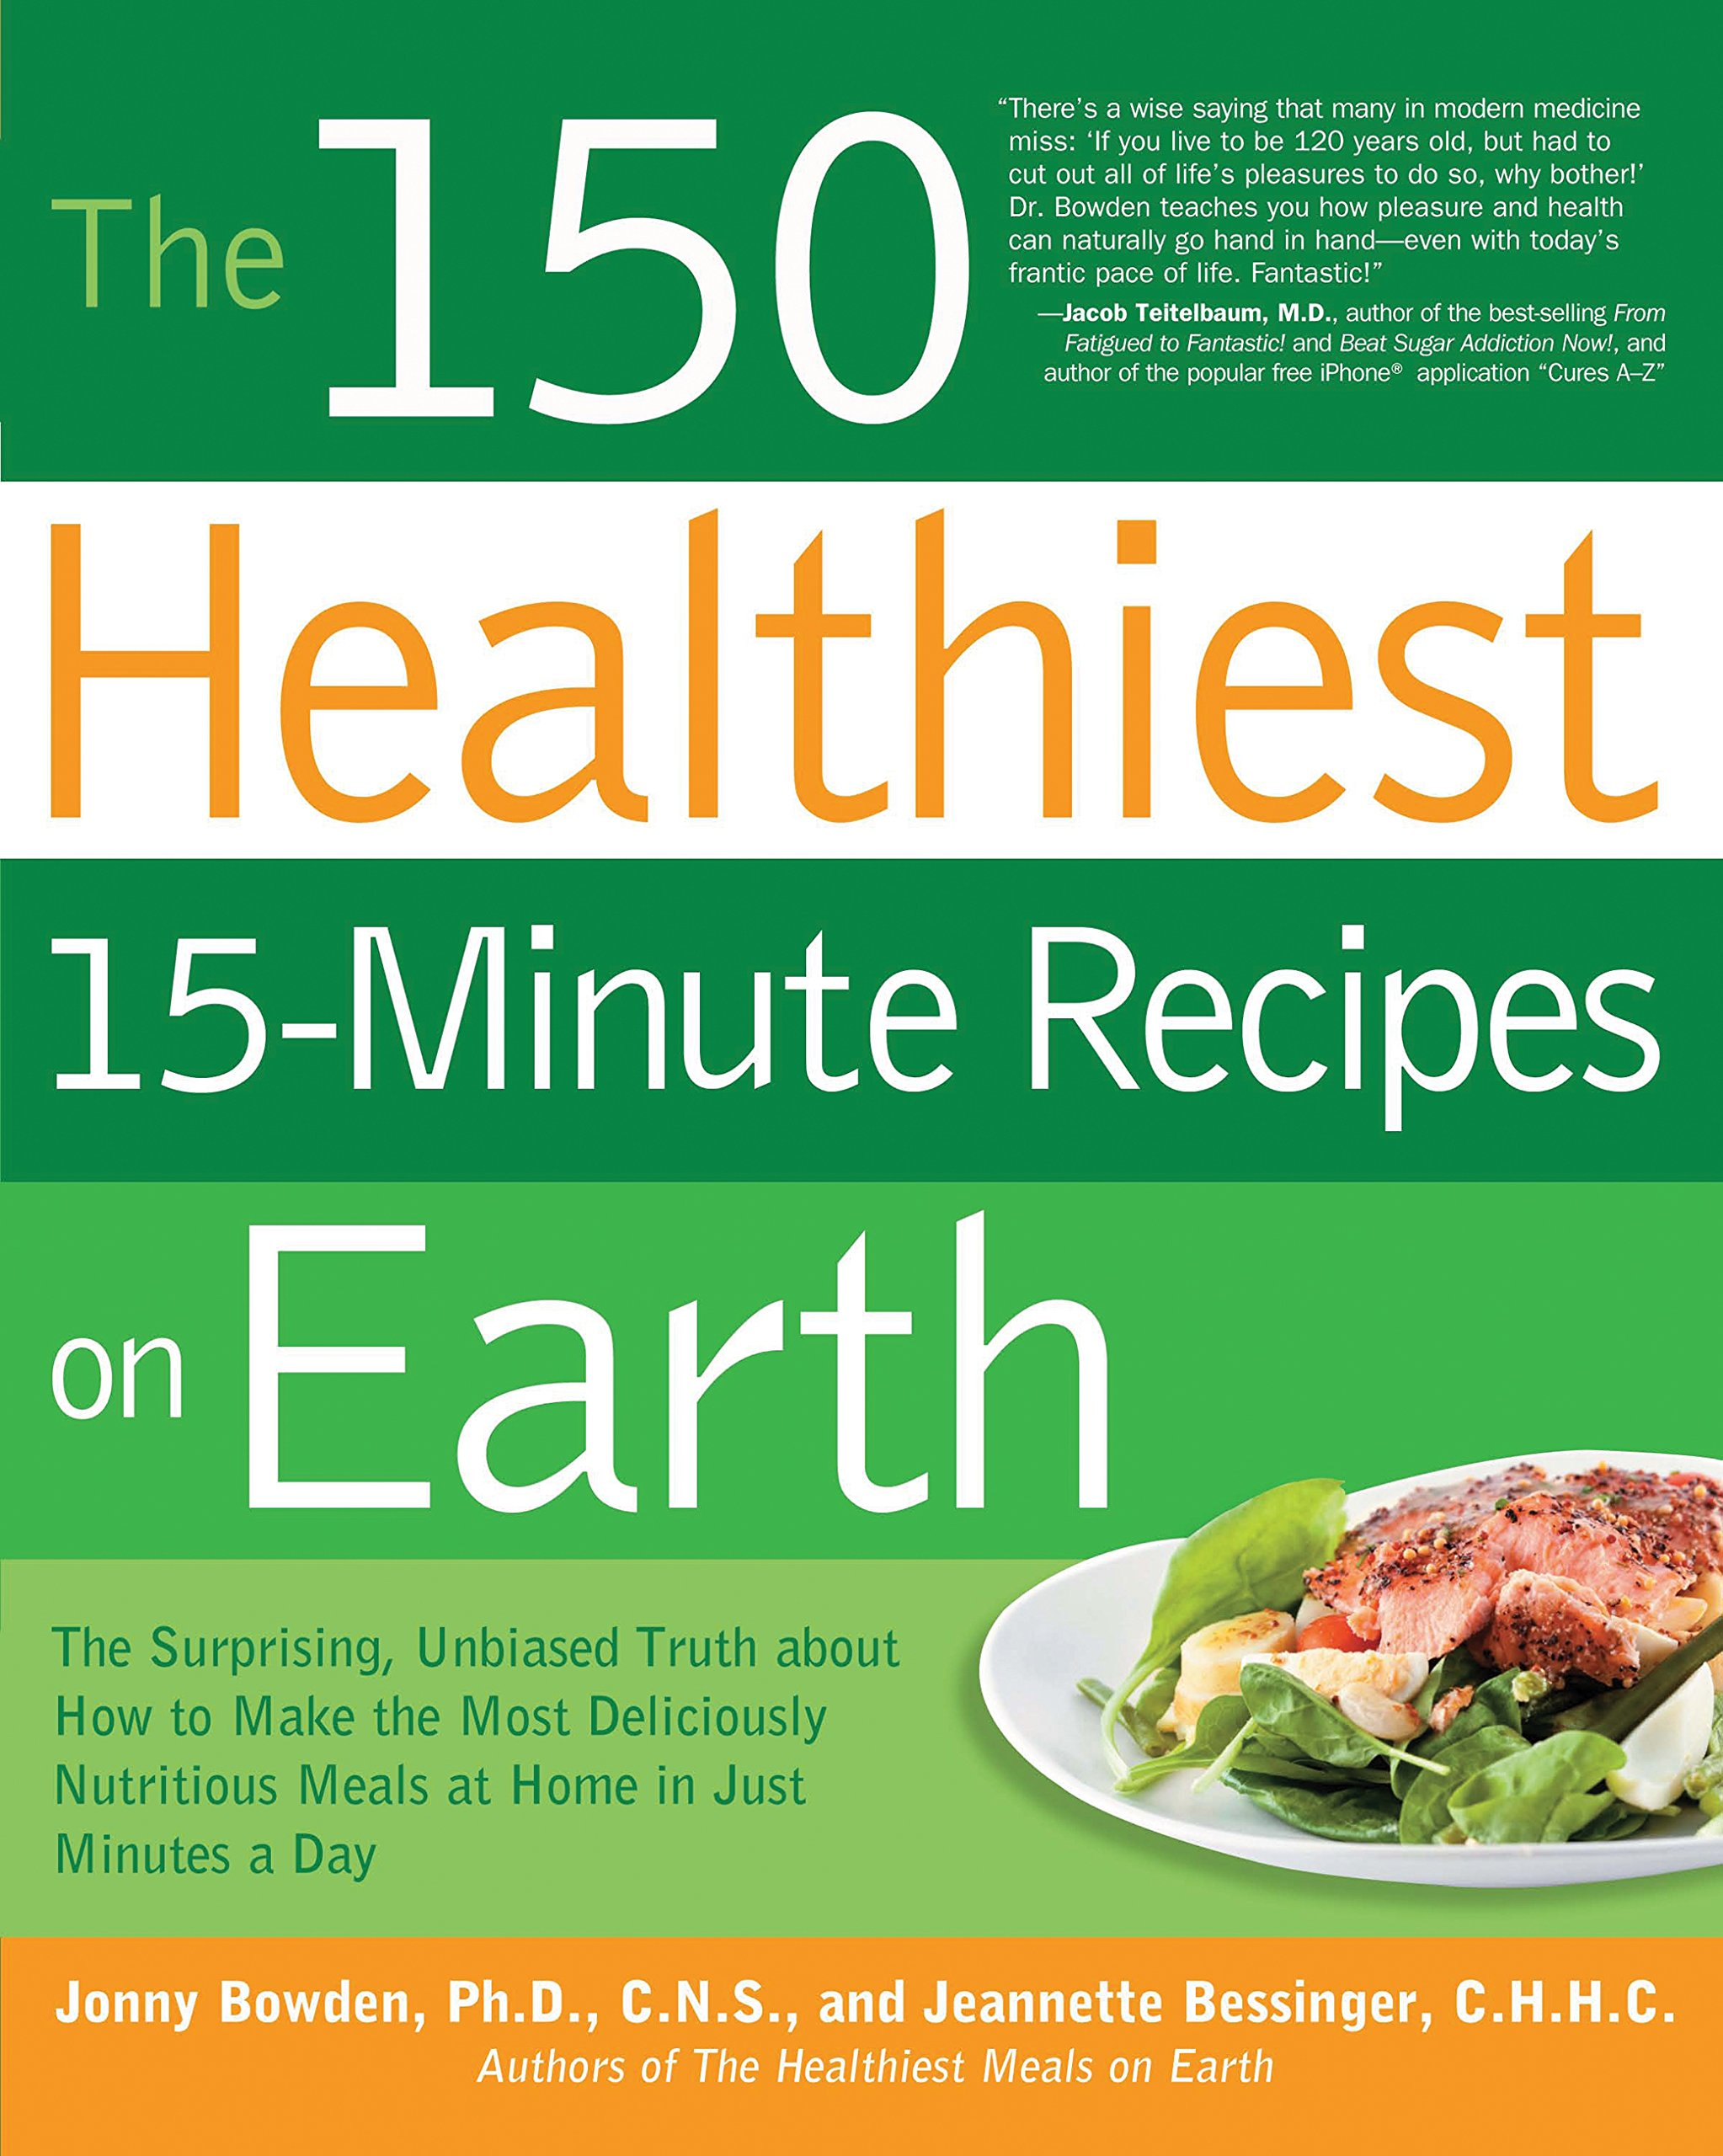 Download The 150 Healthiest 15-Minute Recipes on Earth: The Surprising, Unbiased Truth about How to Make the Most Deliciously Nutritious Meals at Home in Just Minutes a Day pdf epub